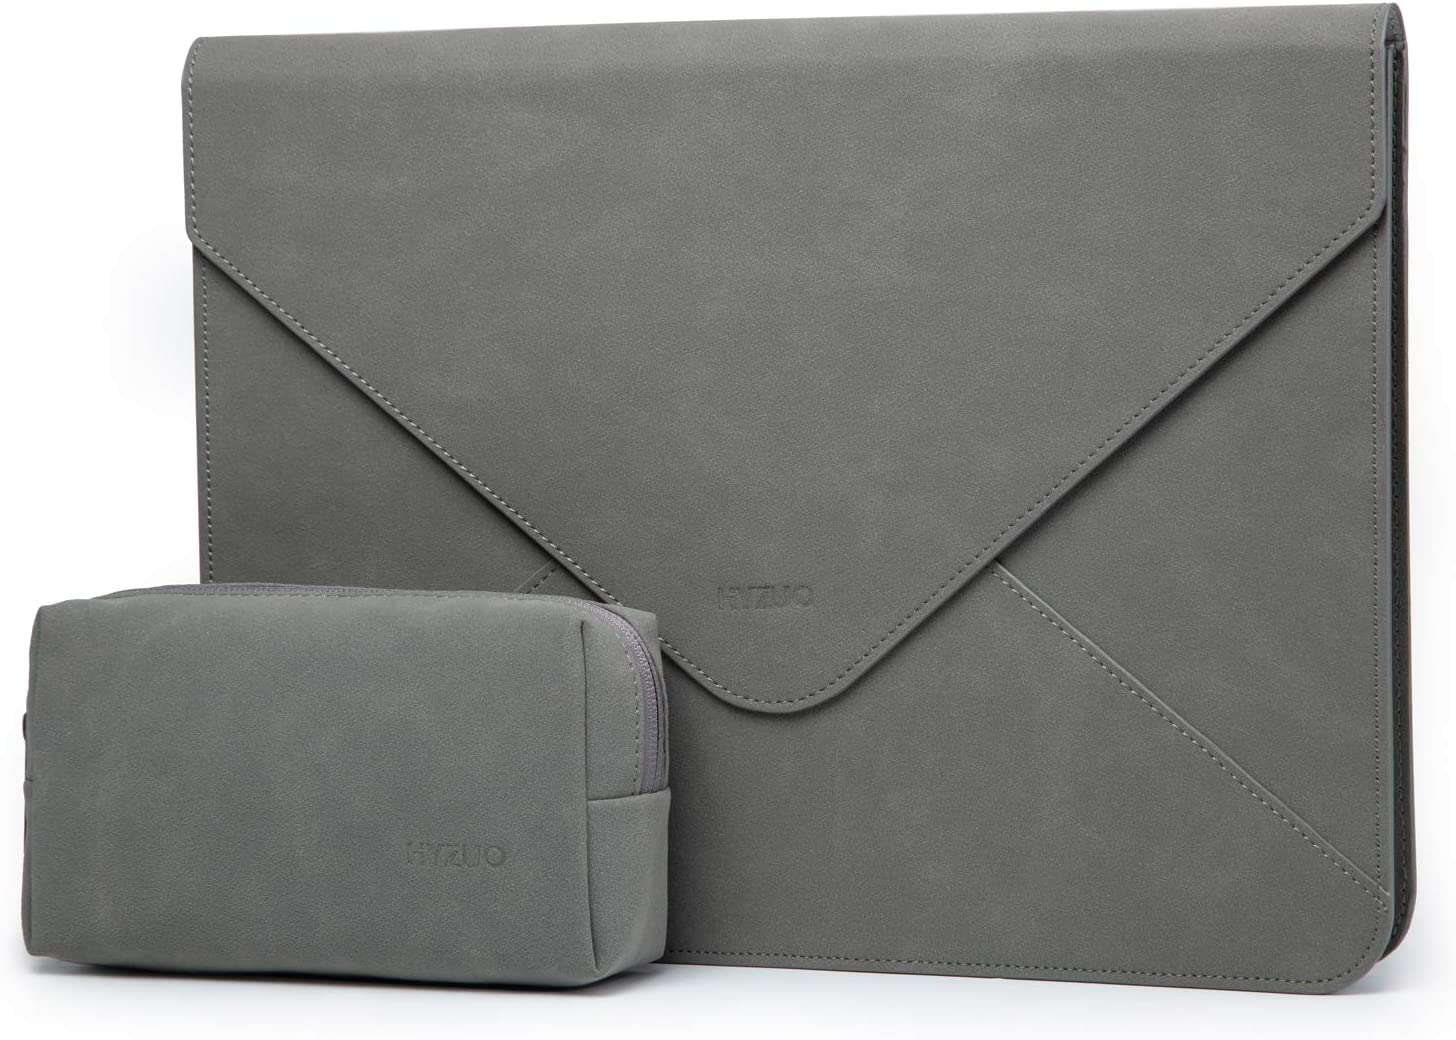 HYZUO 15-16 Inch Laptop Sleeve Protective Case Cover Compatible with 2019 New MacBook Pro 16 A2141/Dell XPS 15/Surface Laptop 4 3 15 Inch/MacBook Pro 15 2012-2019 with Small Bag, Dark Grey